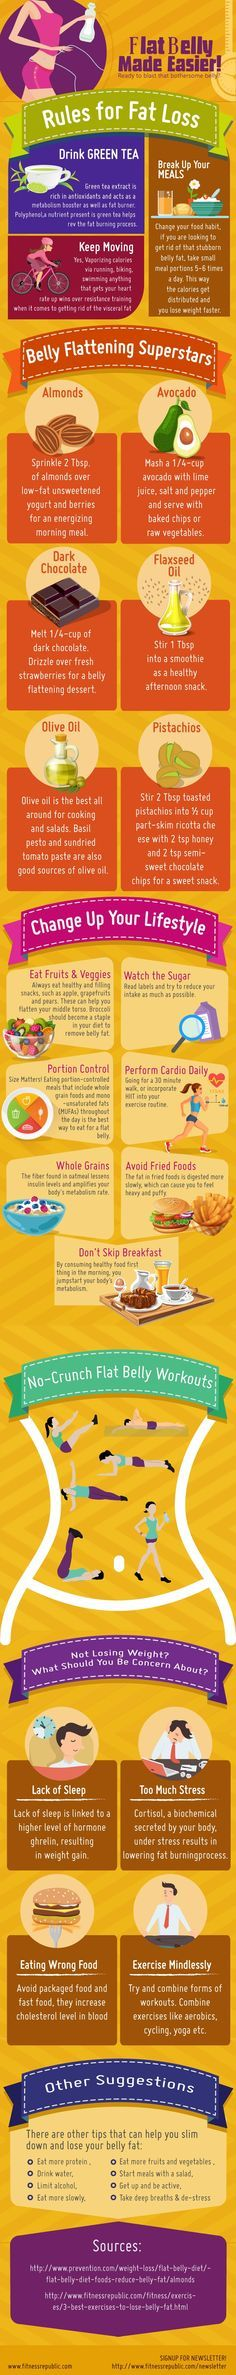 Infographic: Tips For Attaining A Flat Stomach, What To Eat And Do To Burn Fat -